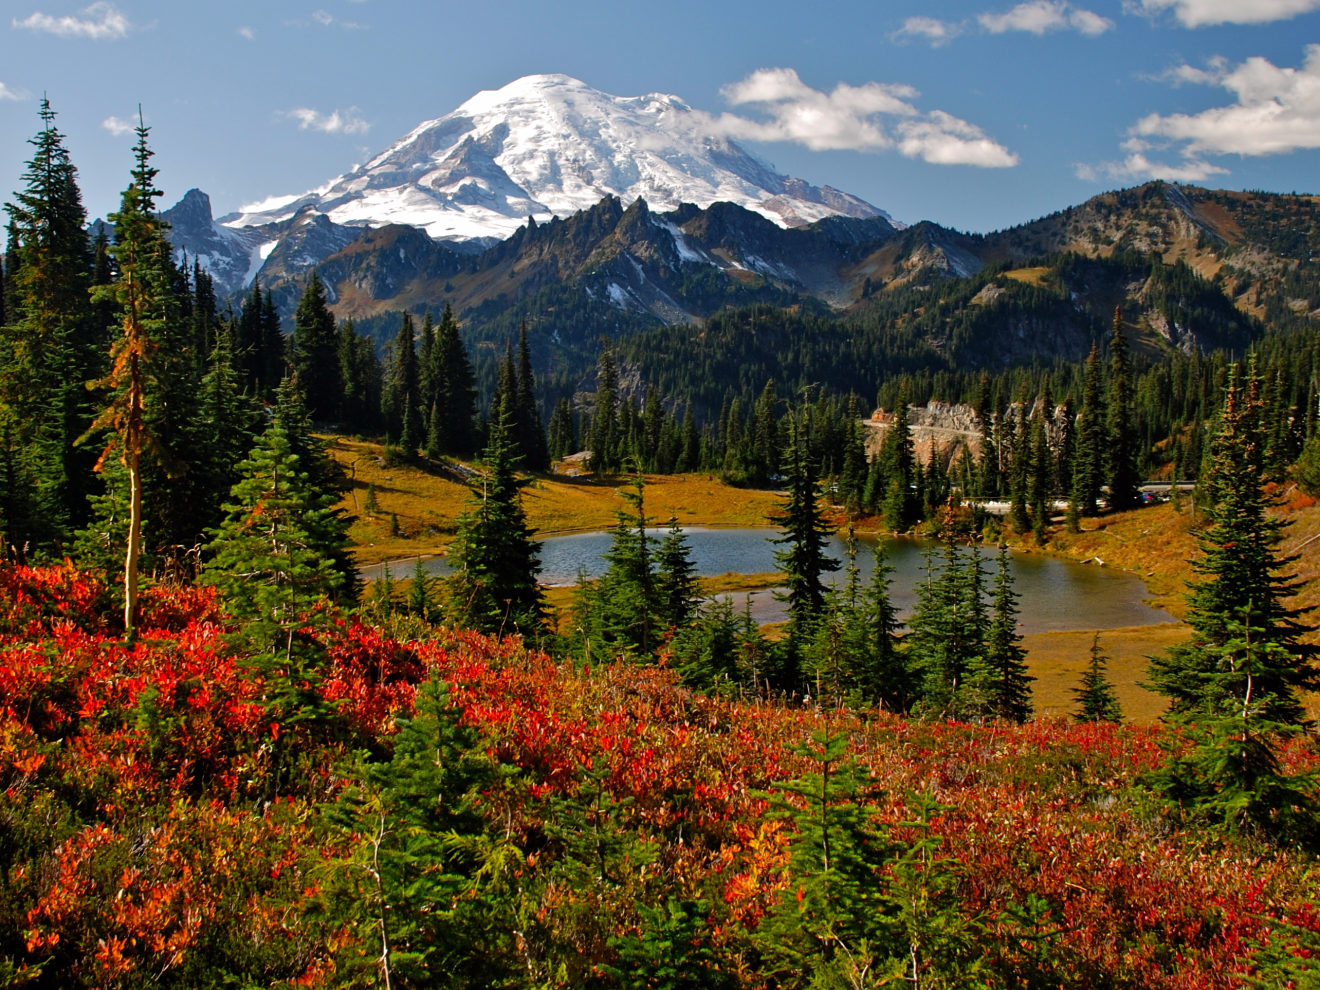 The iconic Mount Rainier — an active volcano and the most glaciated peak in the contiguous US — can be found in Mount Rainier National Park in Washington. Glaciers mantled Mount Rainier for most or all of its 500,000-year lifespan, but they have been continuously retreating due to increasingly warmer summers over the last 30 years.